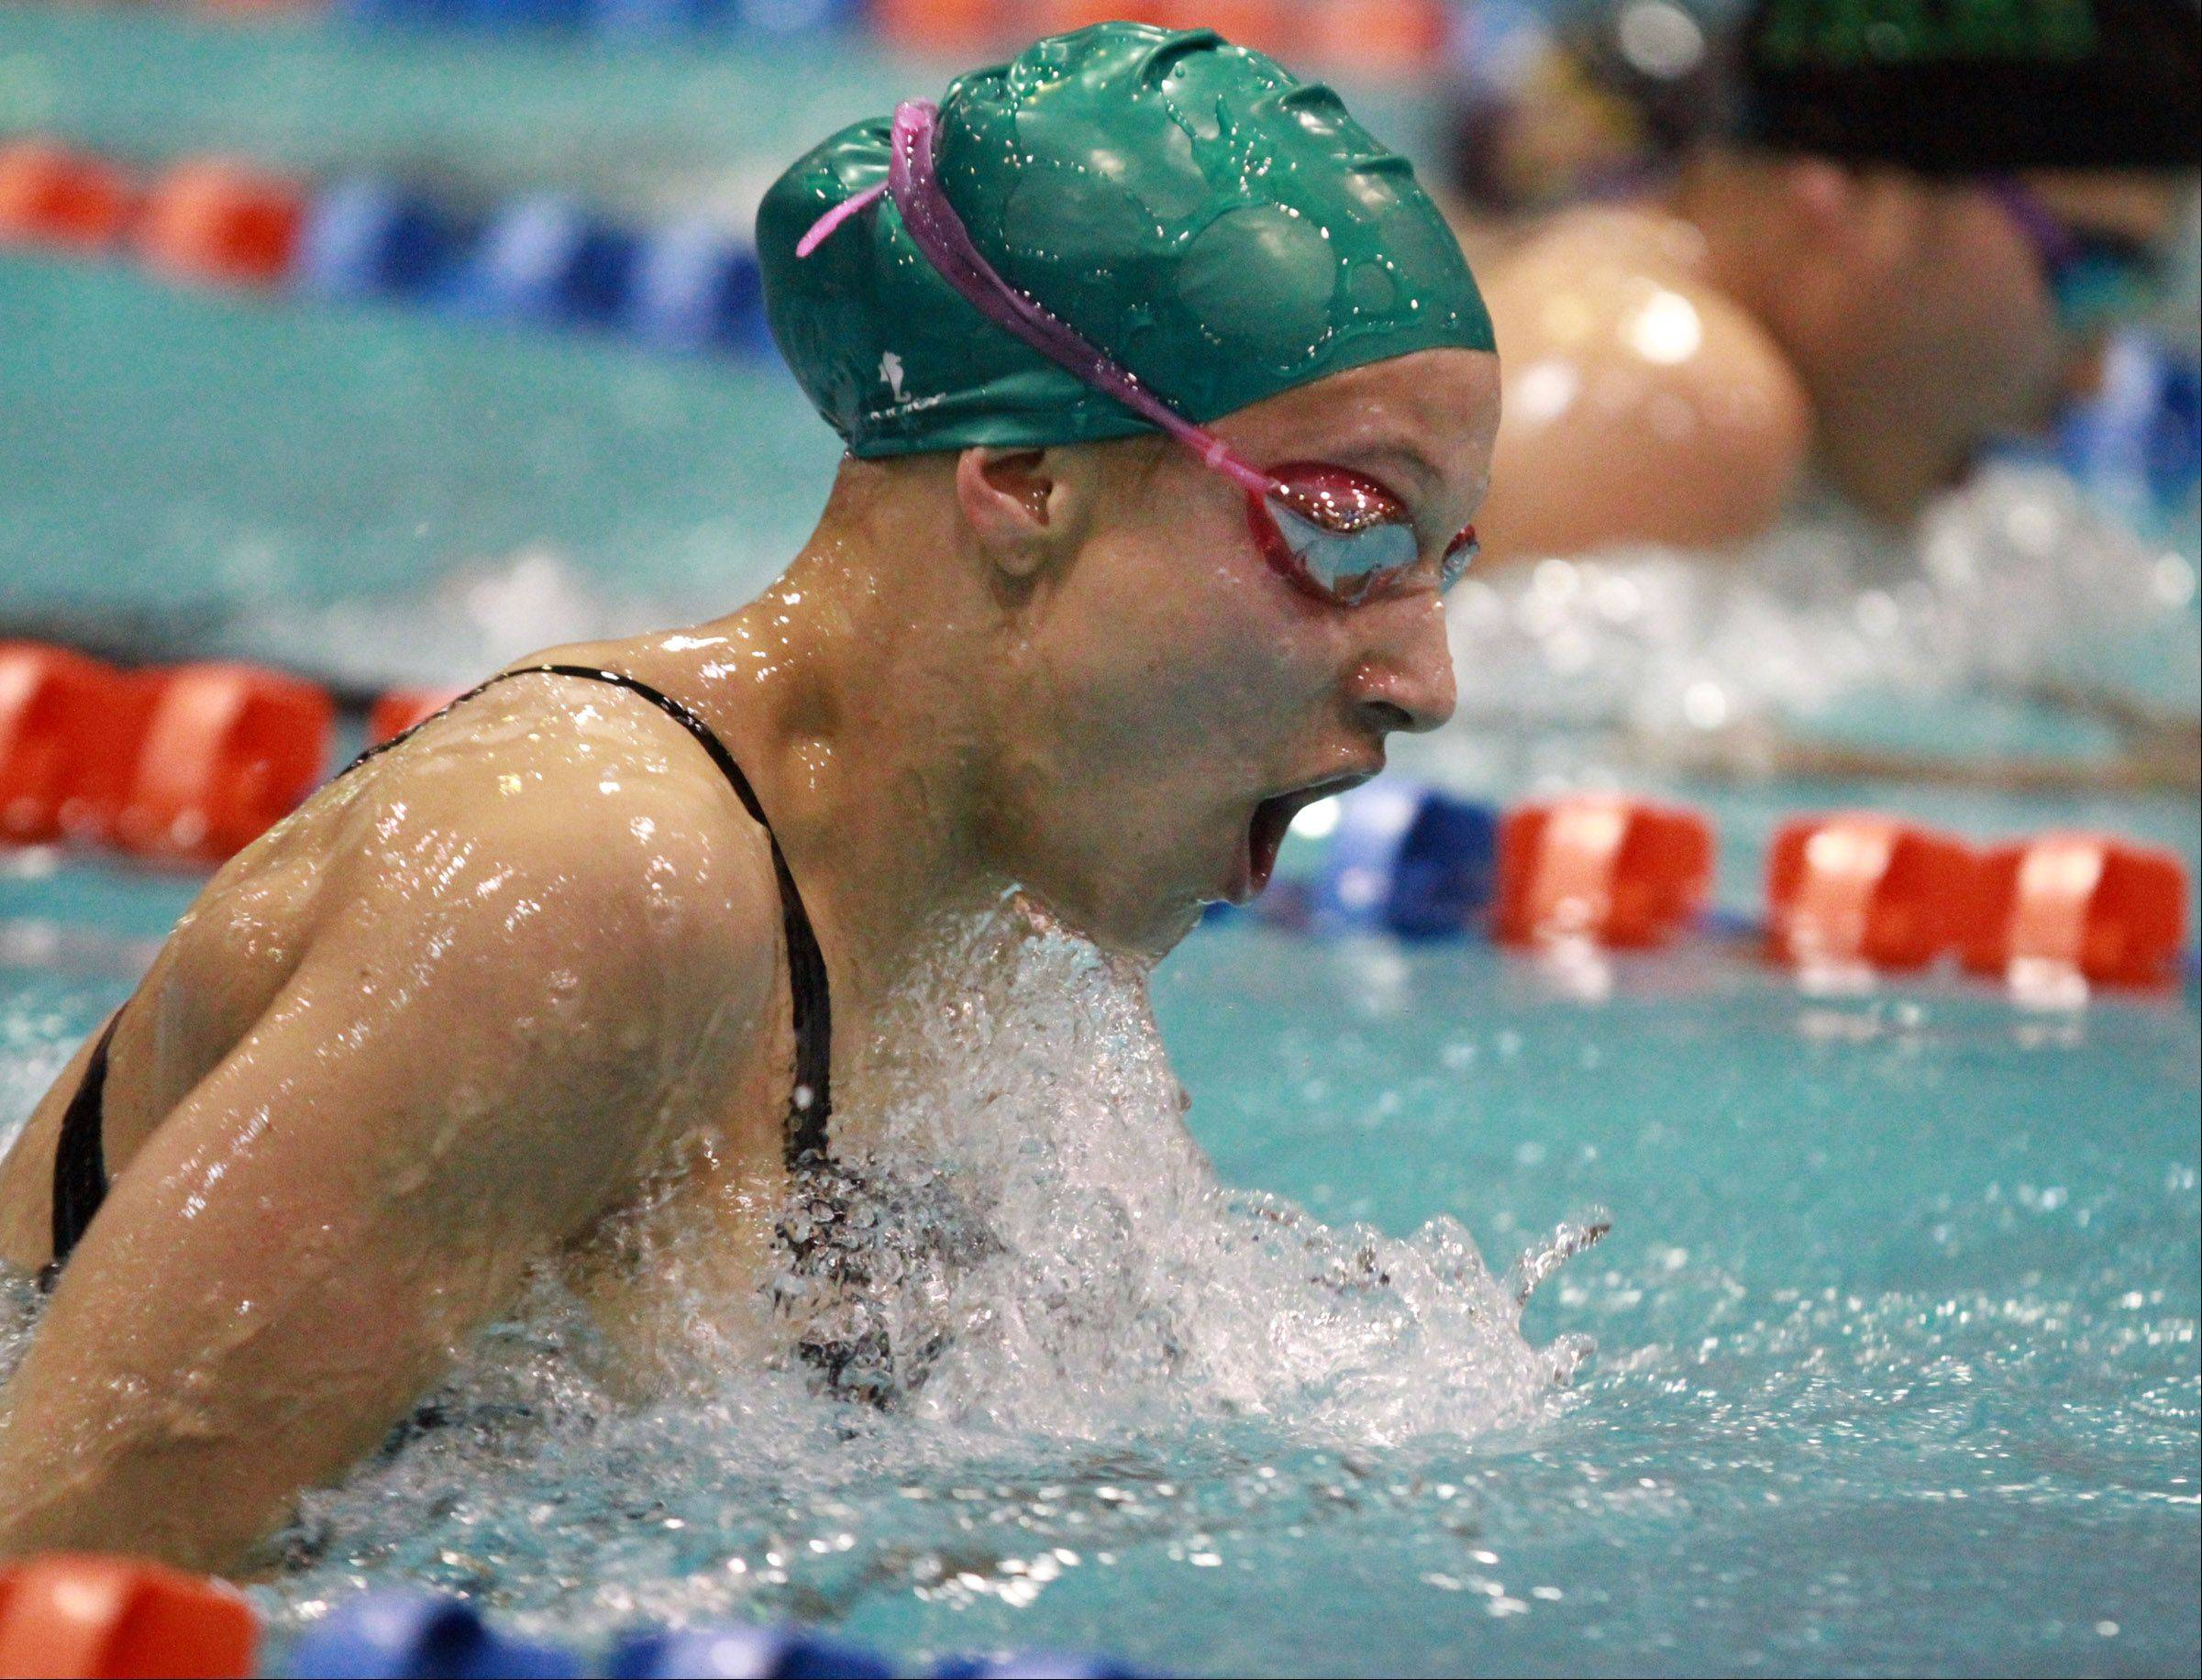 Grayslake Central's Claire Haggerty swims the 200-yard individual medley at state preliminaries in Evanston on Friday.